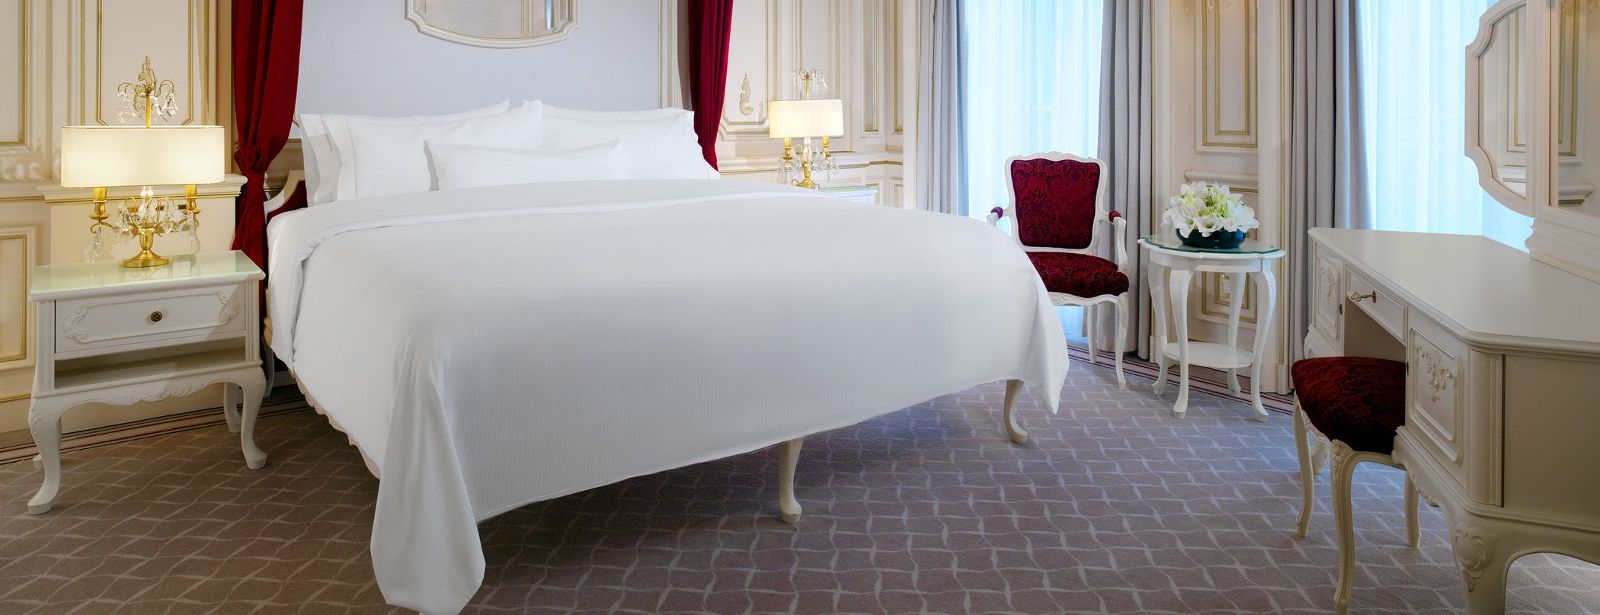 Your perfect suite in Berlin - Themed Suite Sanssouci at The Westin Grand Berlin